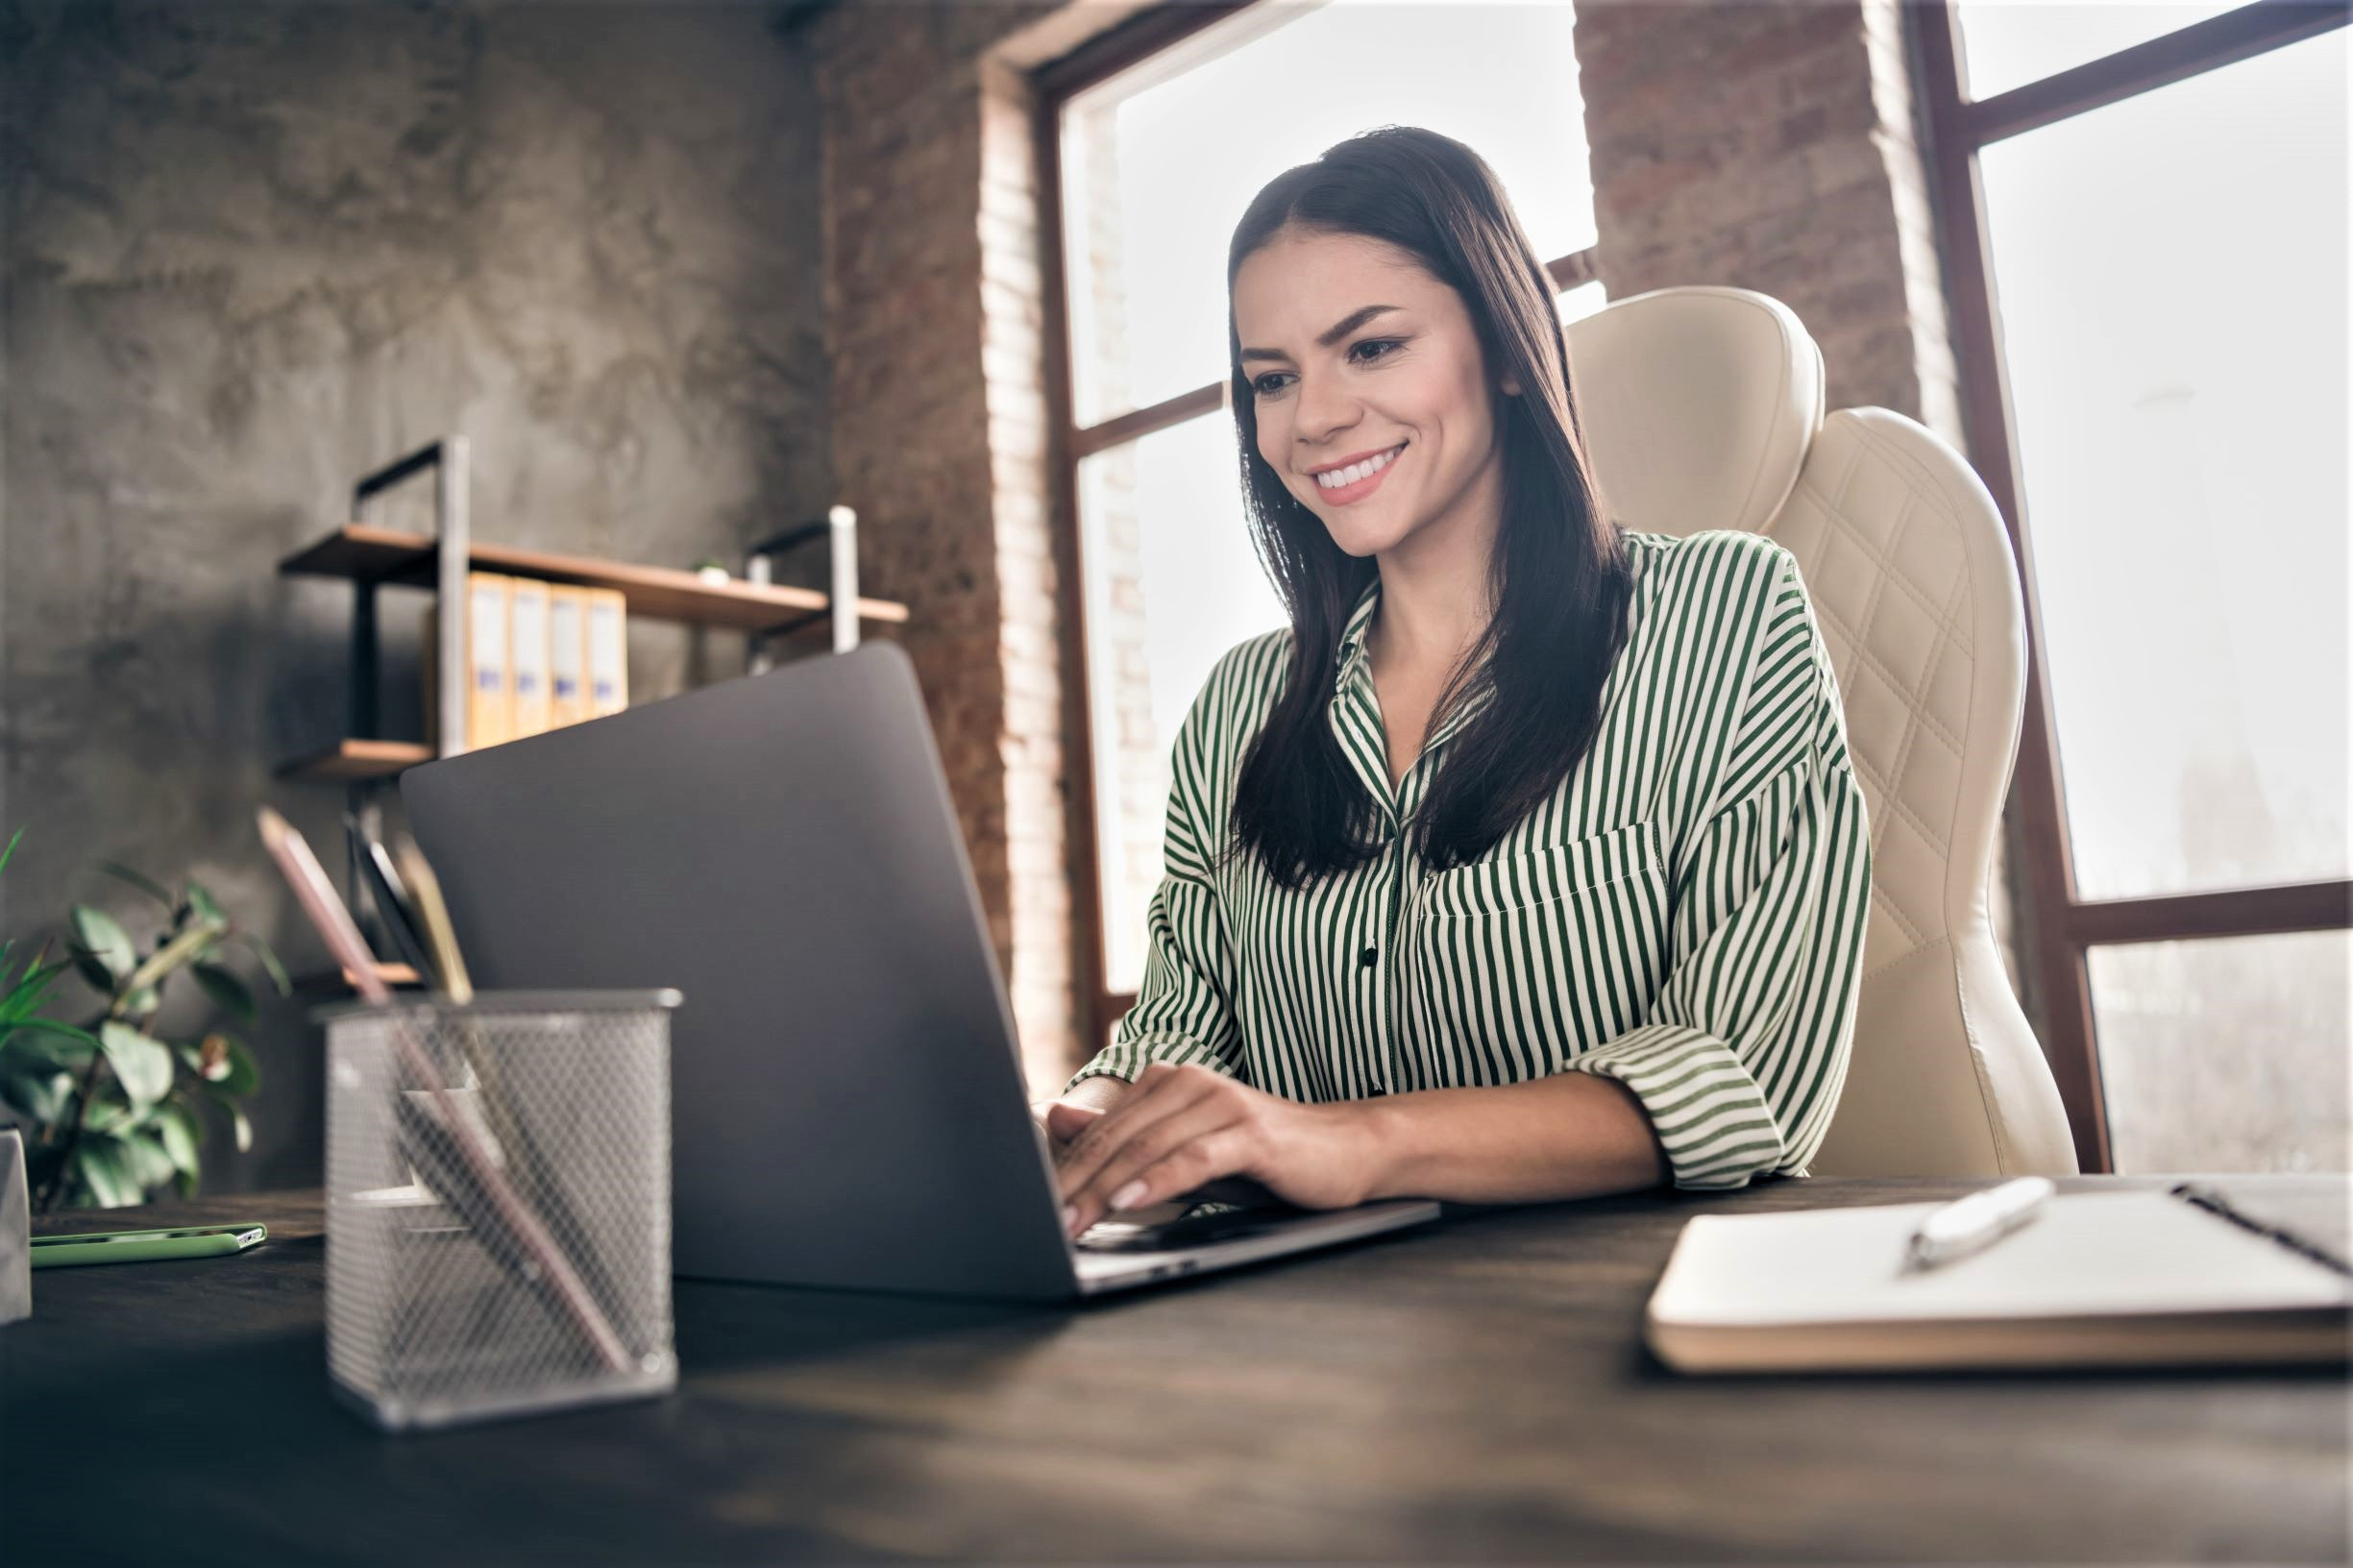 Attorney seeks new clients from her office by connecting online with Spanish speaking leads